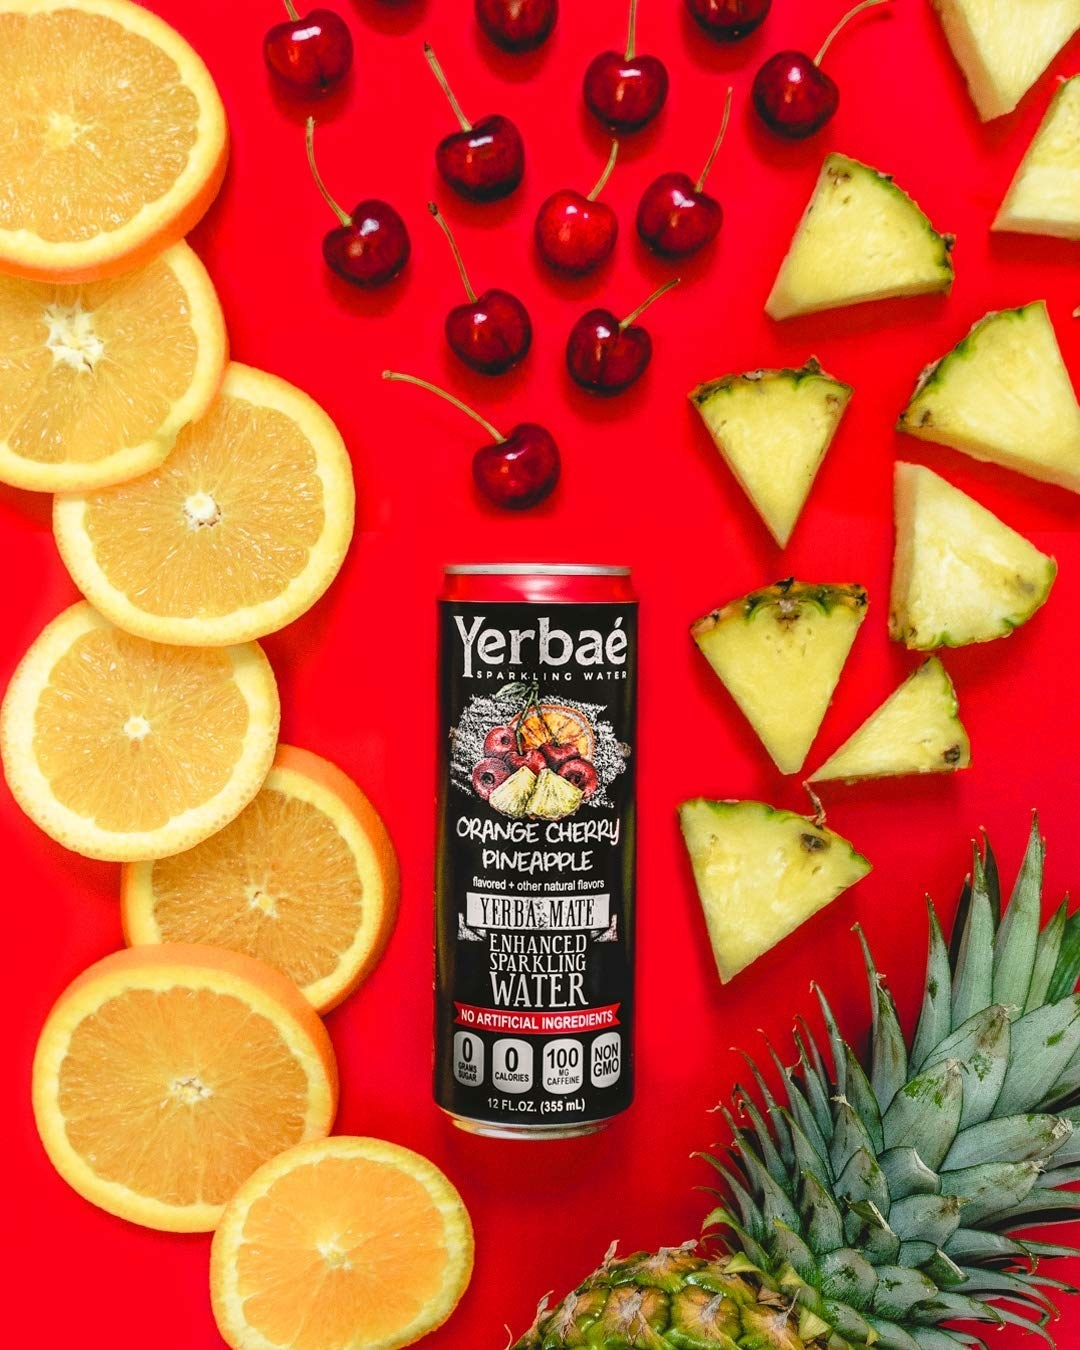 A can of Yerbaé sparking water in the flavor orange cherry pineapple